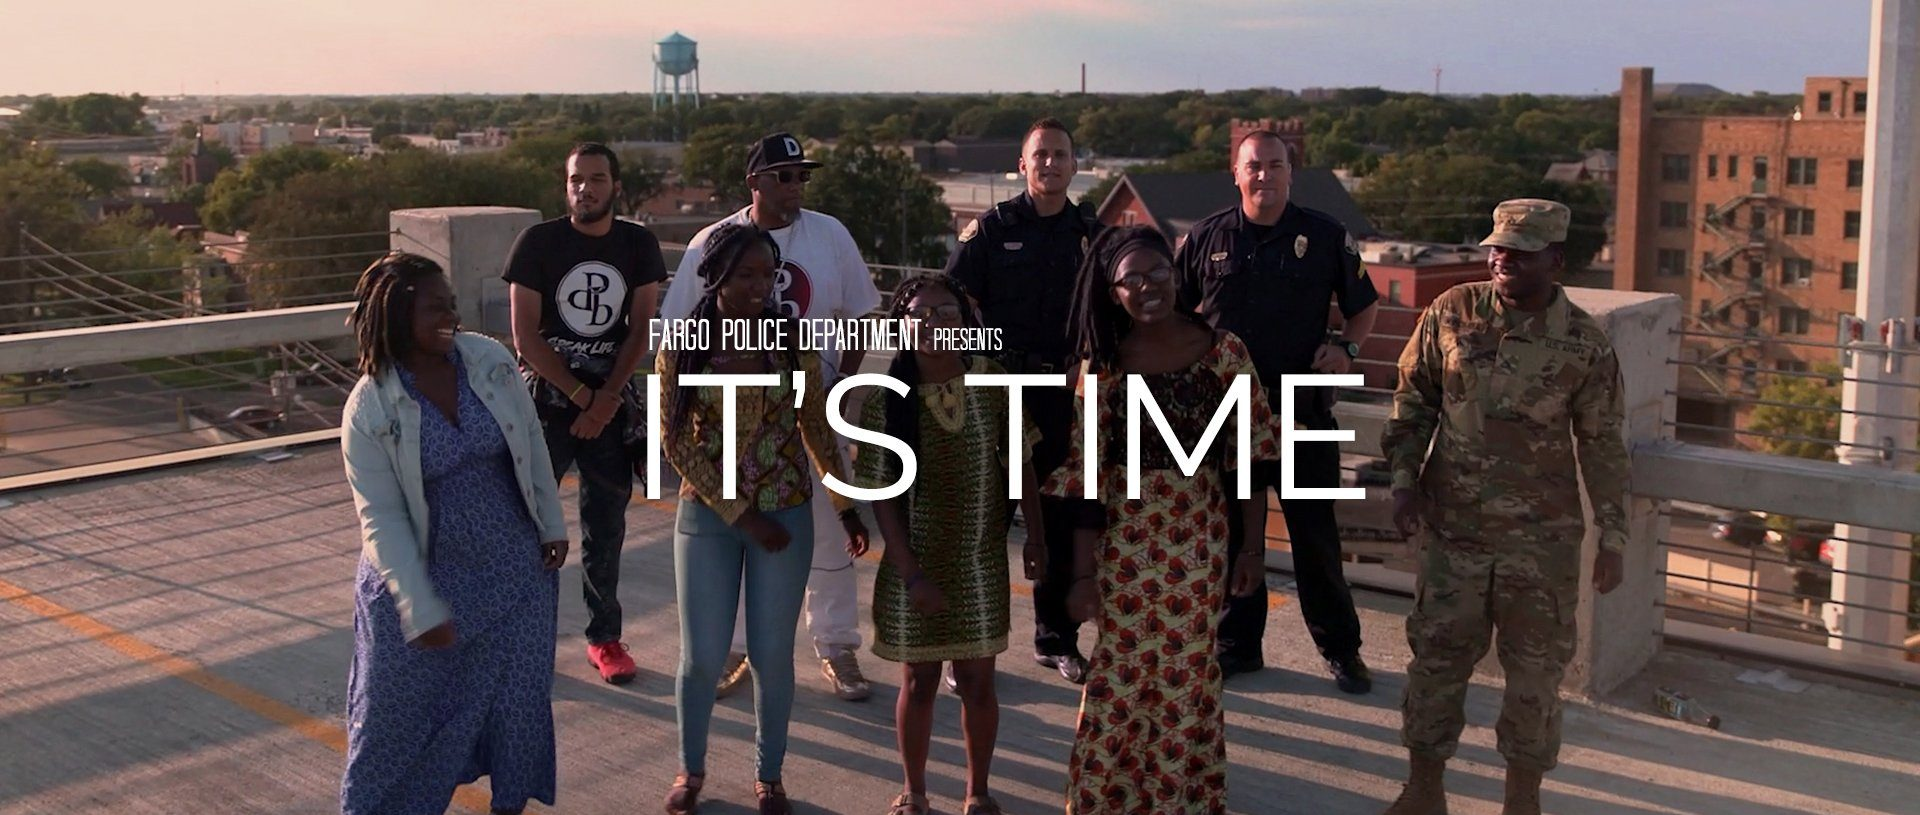 It's Time Music Video | Fargo Police Department